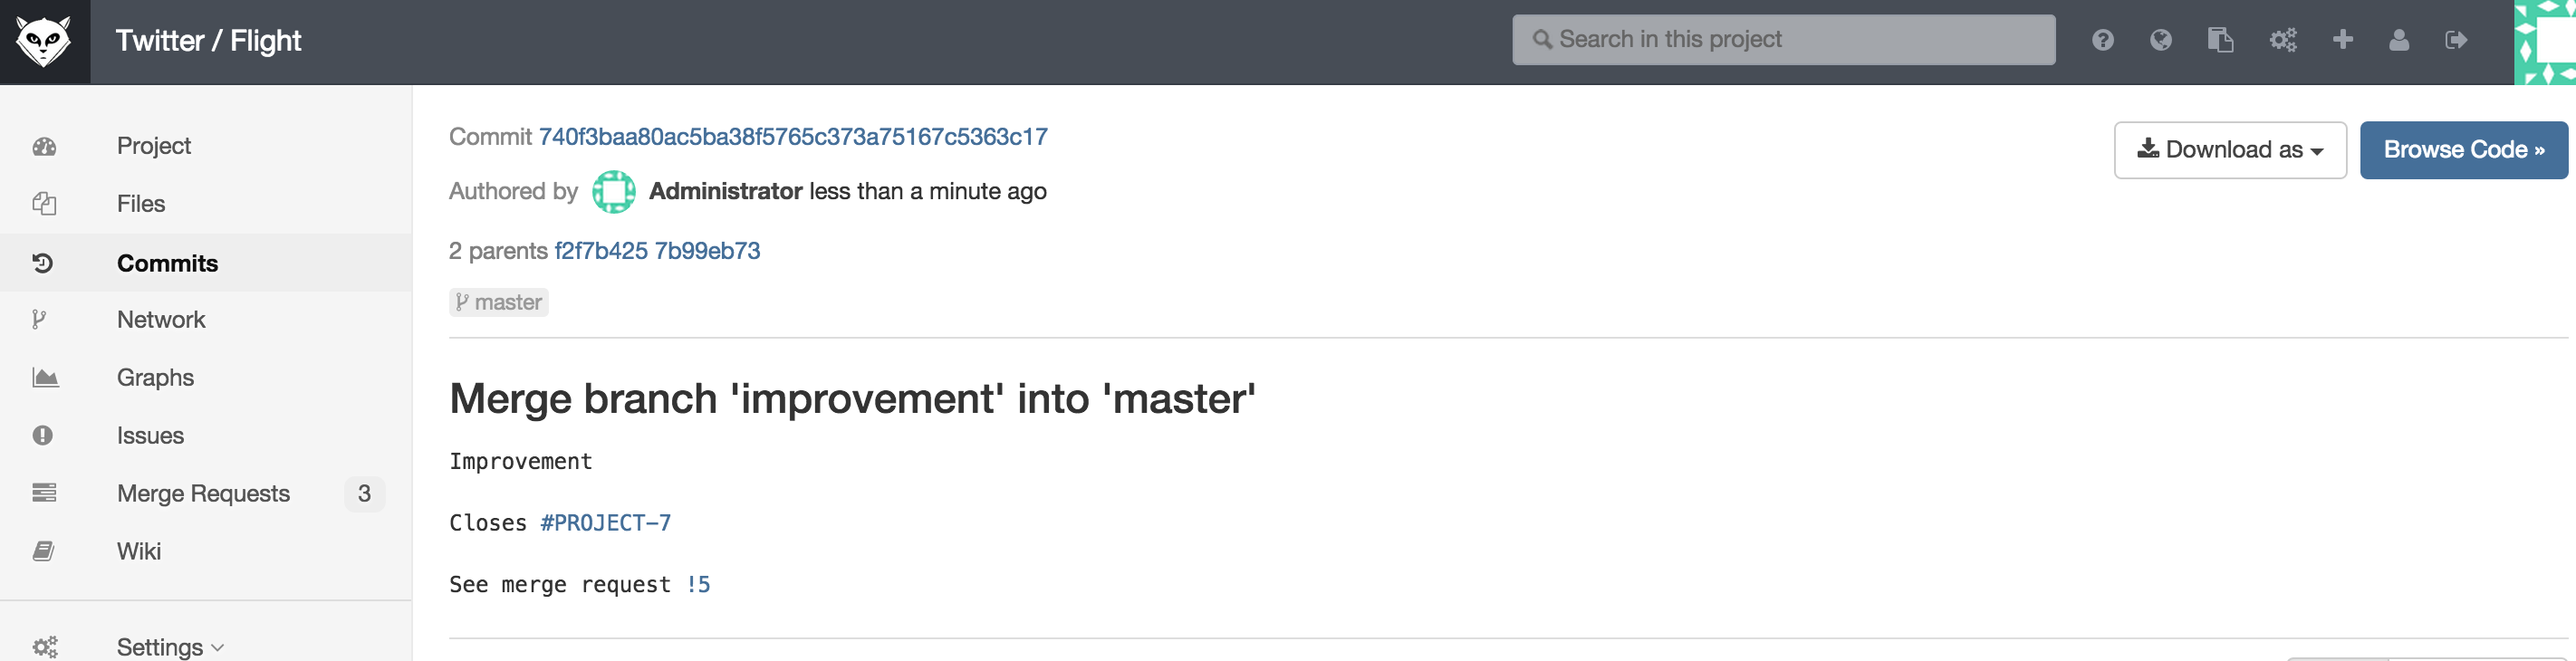 doc/project_services/img/jira_merge_request_close.png